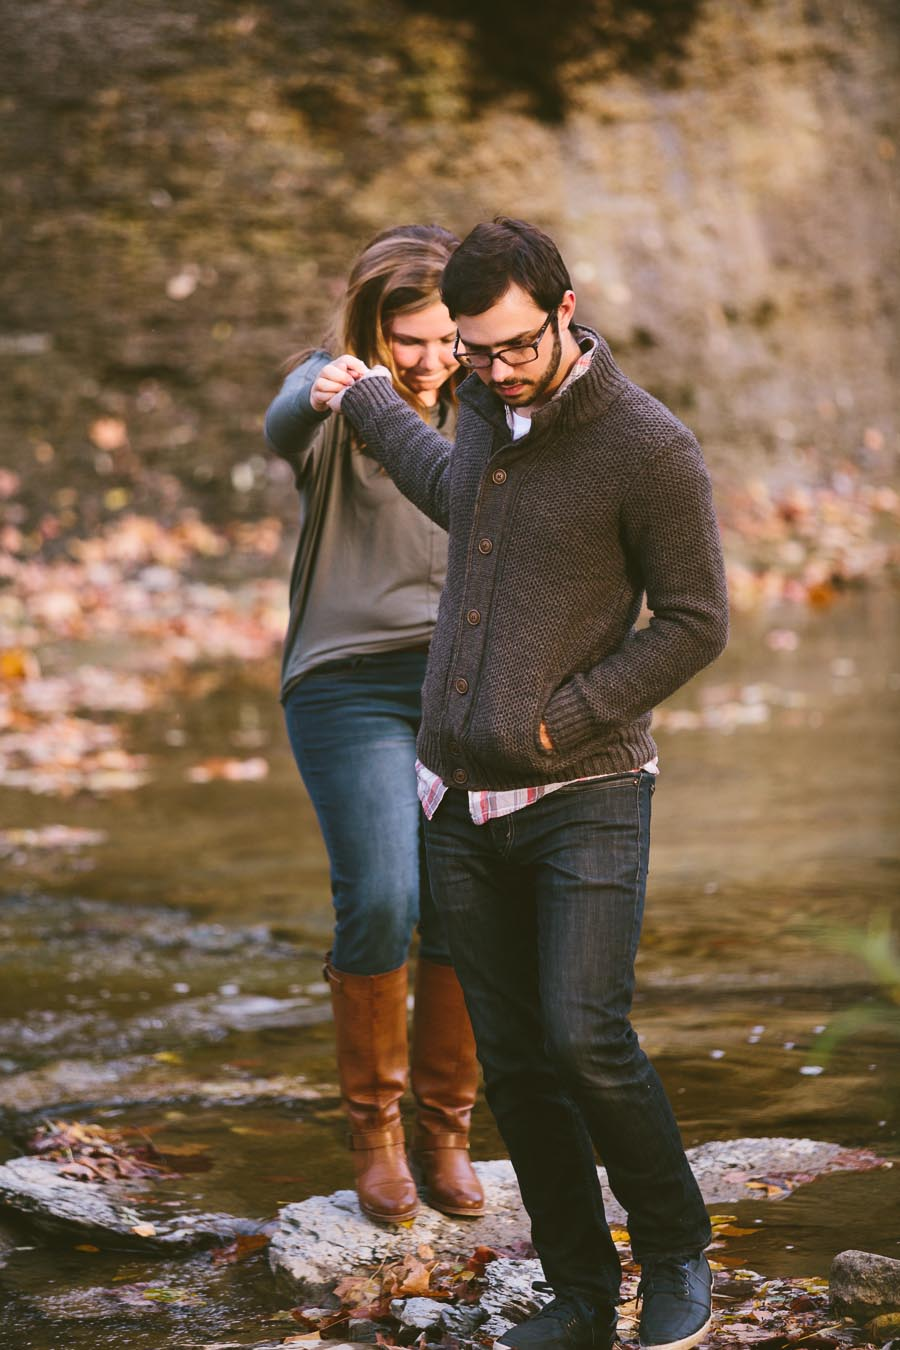 valley-city-ohio-engagement-photography-10.jpg